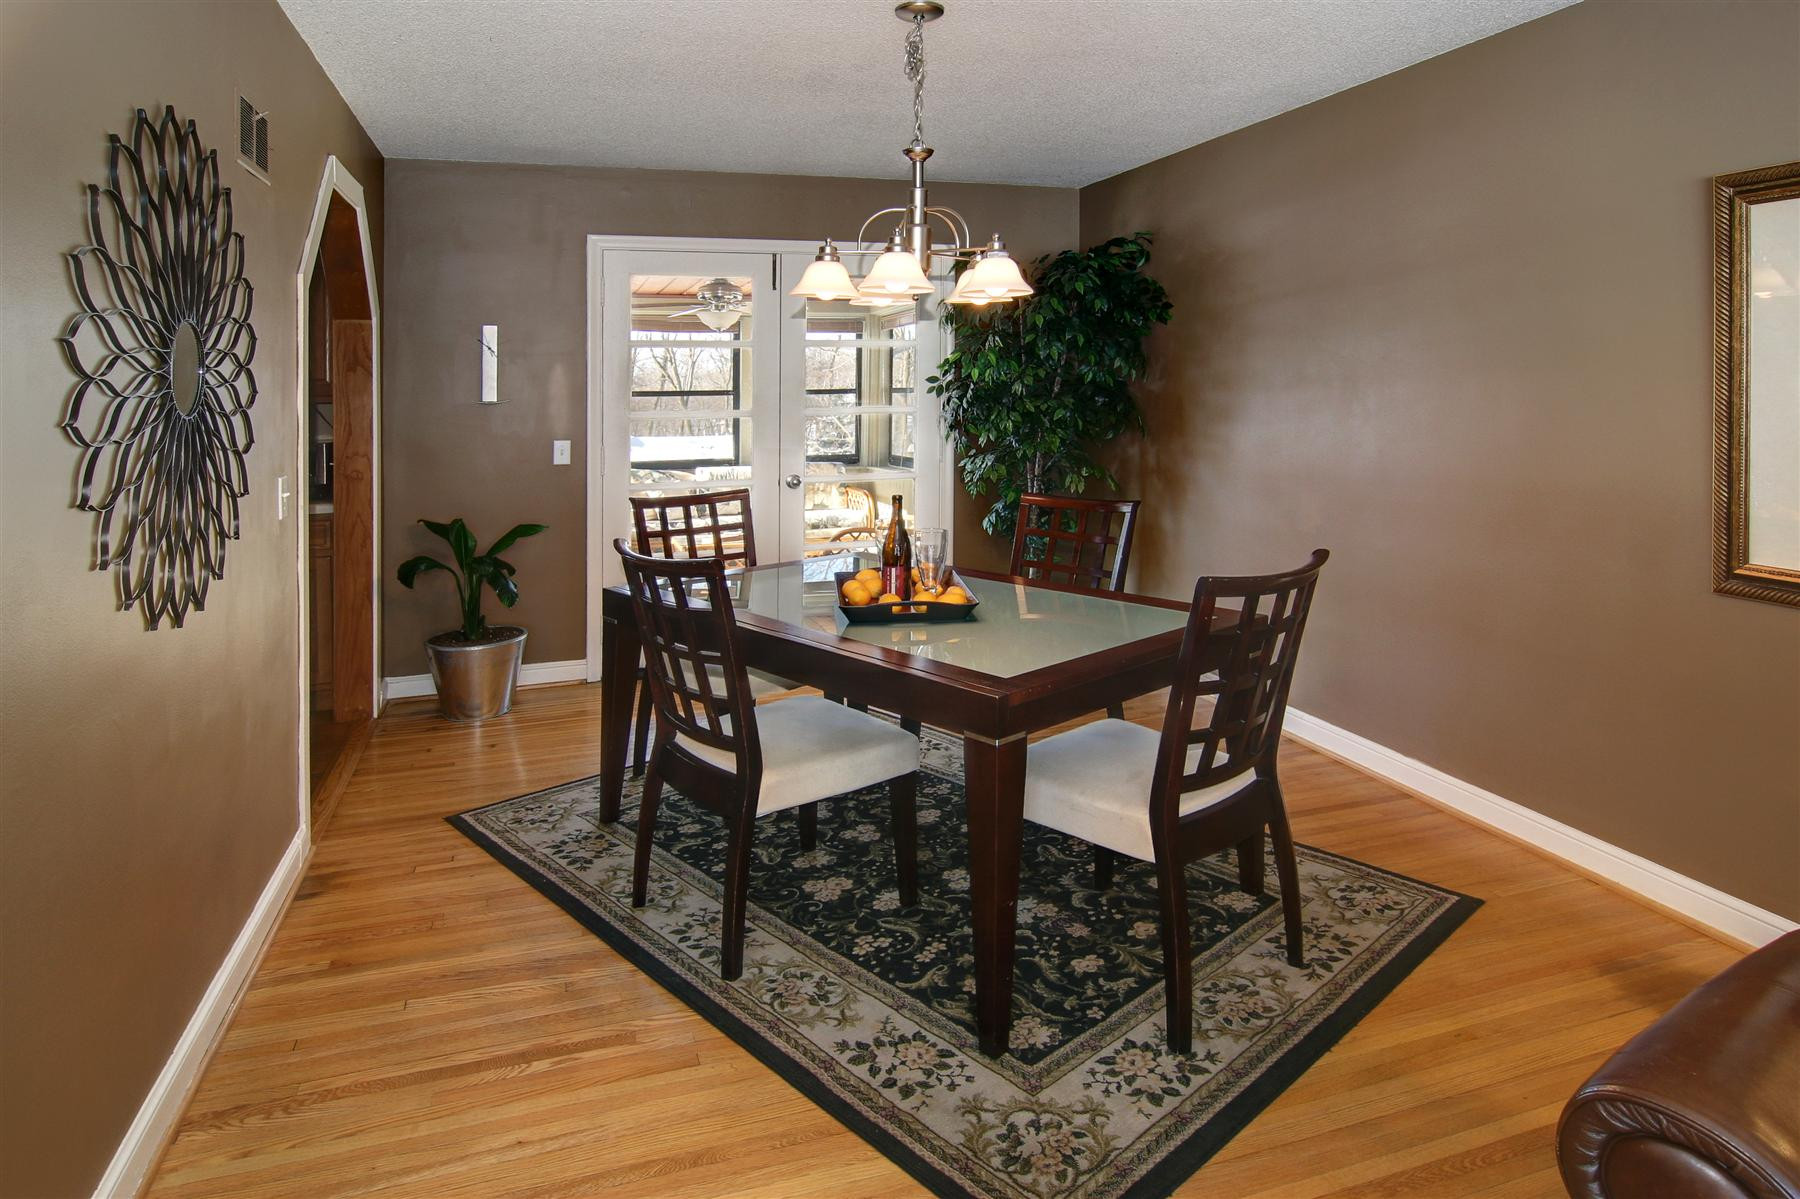 Best ideas about Dining Room Rug . Save or Pin 30 Rugs That Showcase Their Power Under the Dining Table Now.